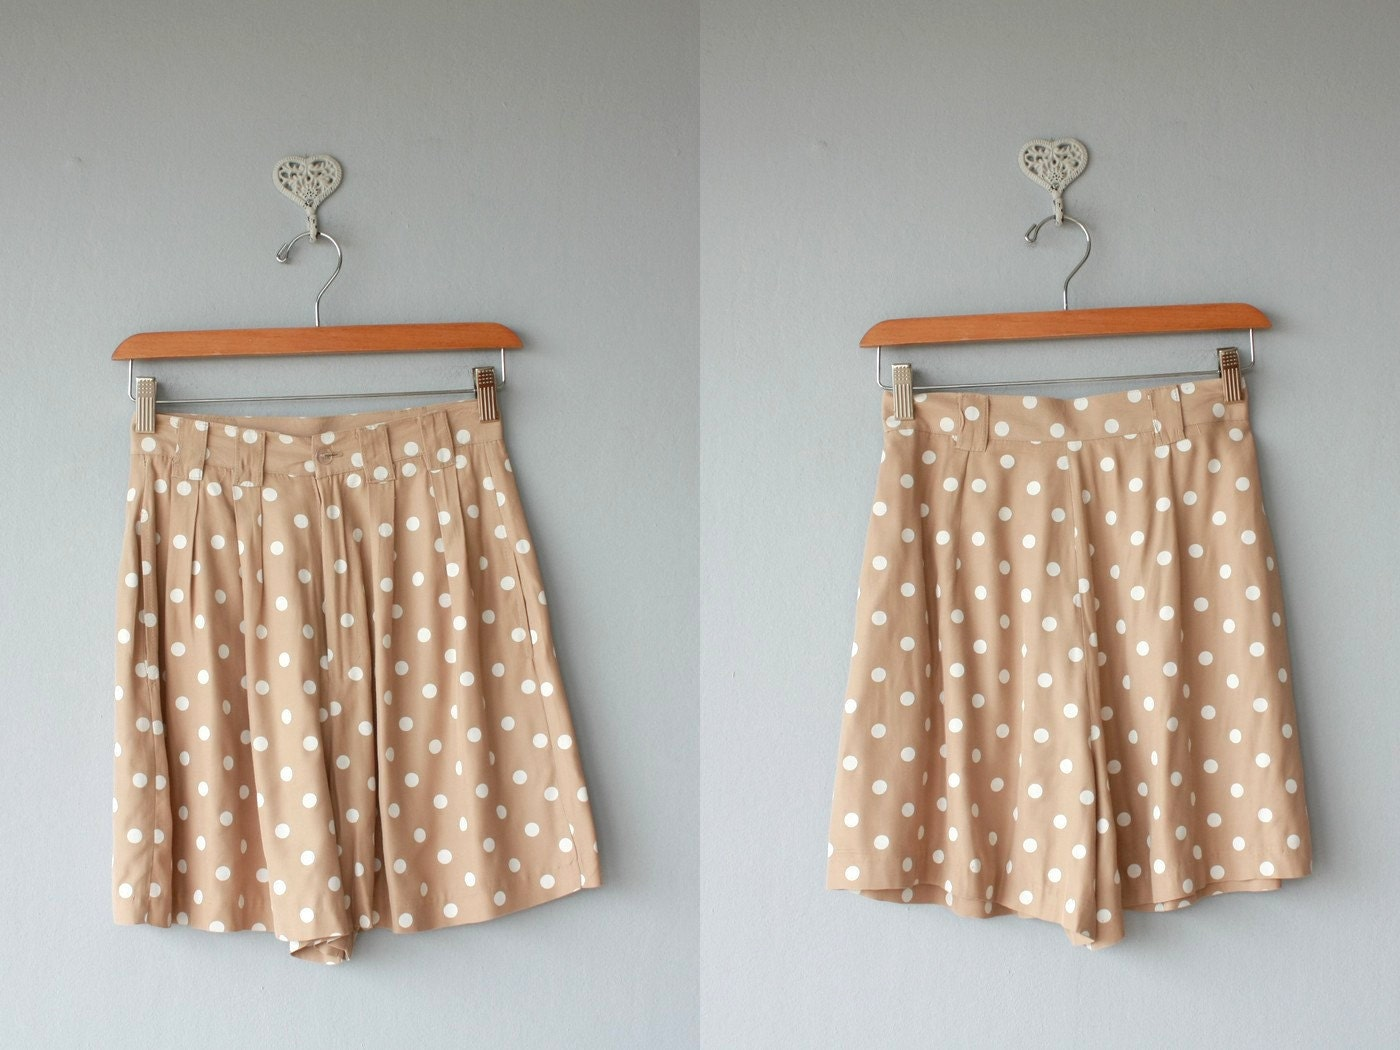 polka dot shorts / 1980s high waisted shorts / 80s pleated shorts - size small